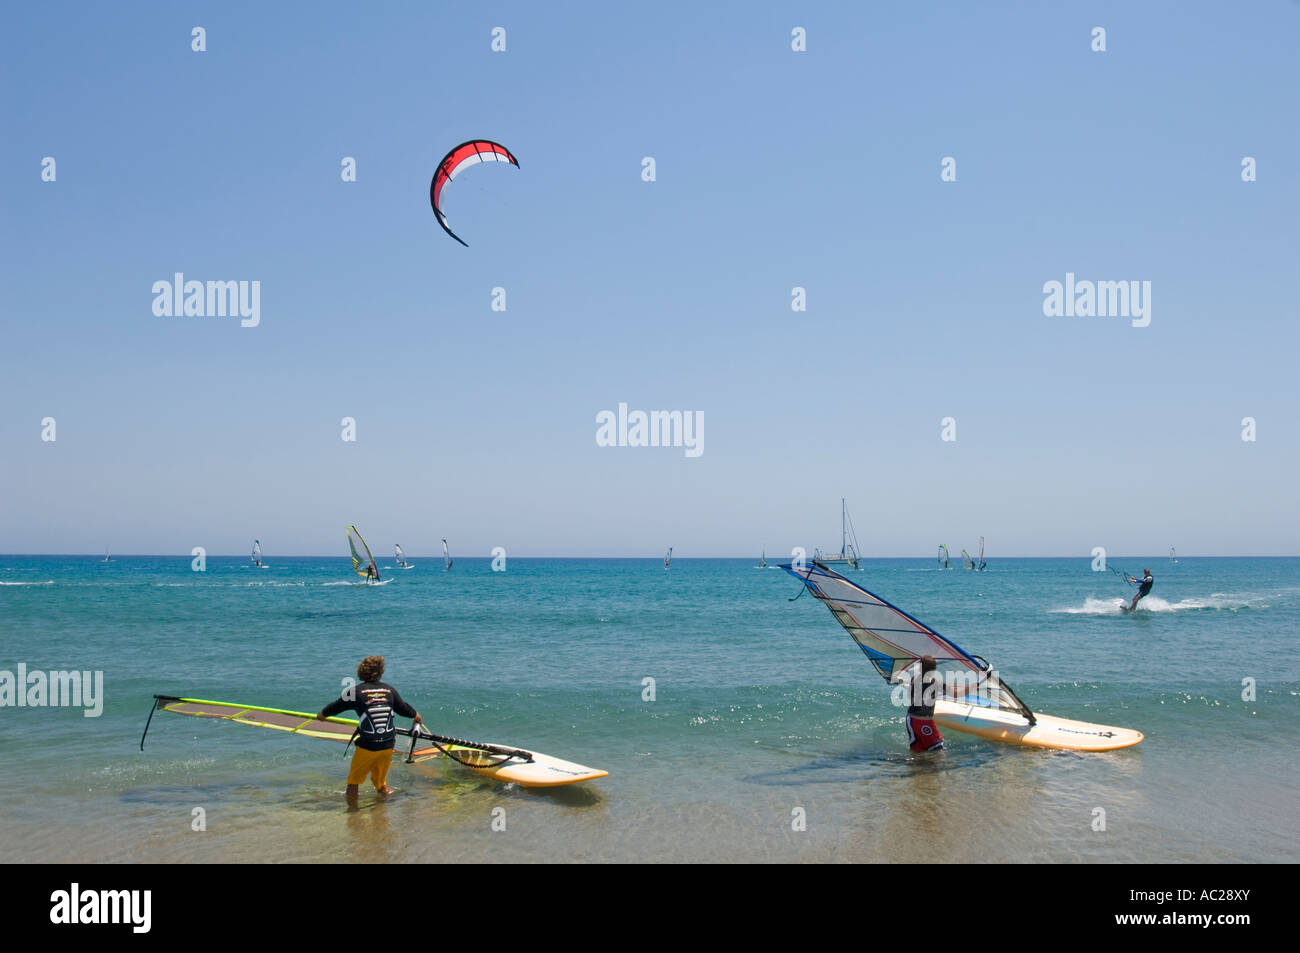 A windsurfing instuctor teaching a student the basic skills of the sport with windsurfers and a kitesurfer in the - Stock Image